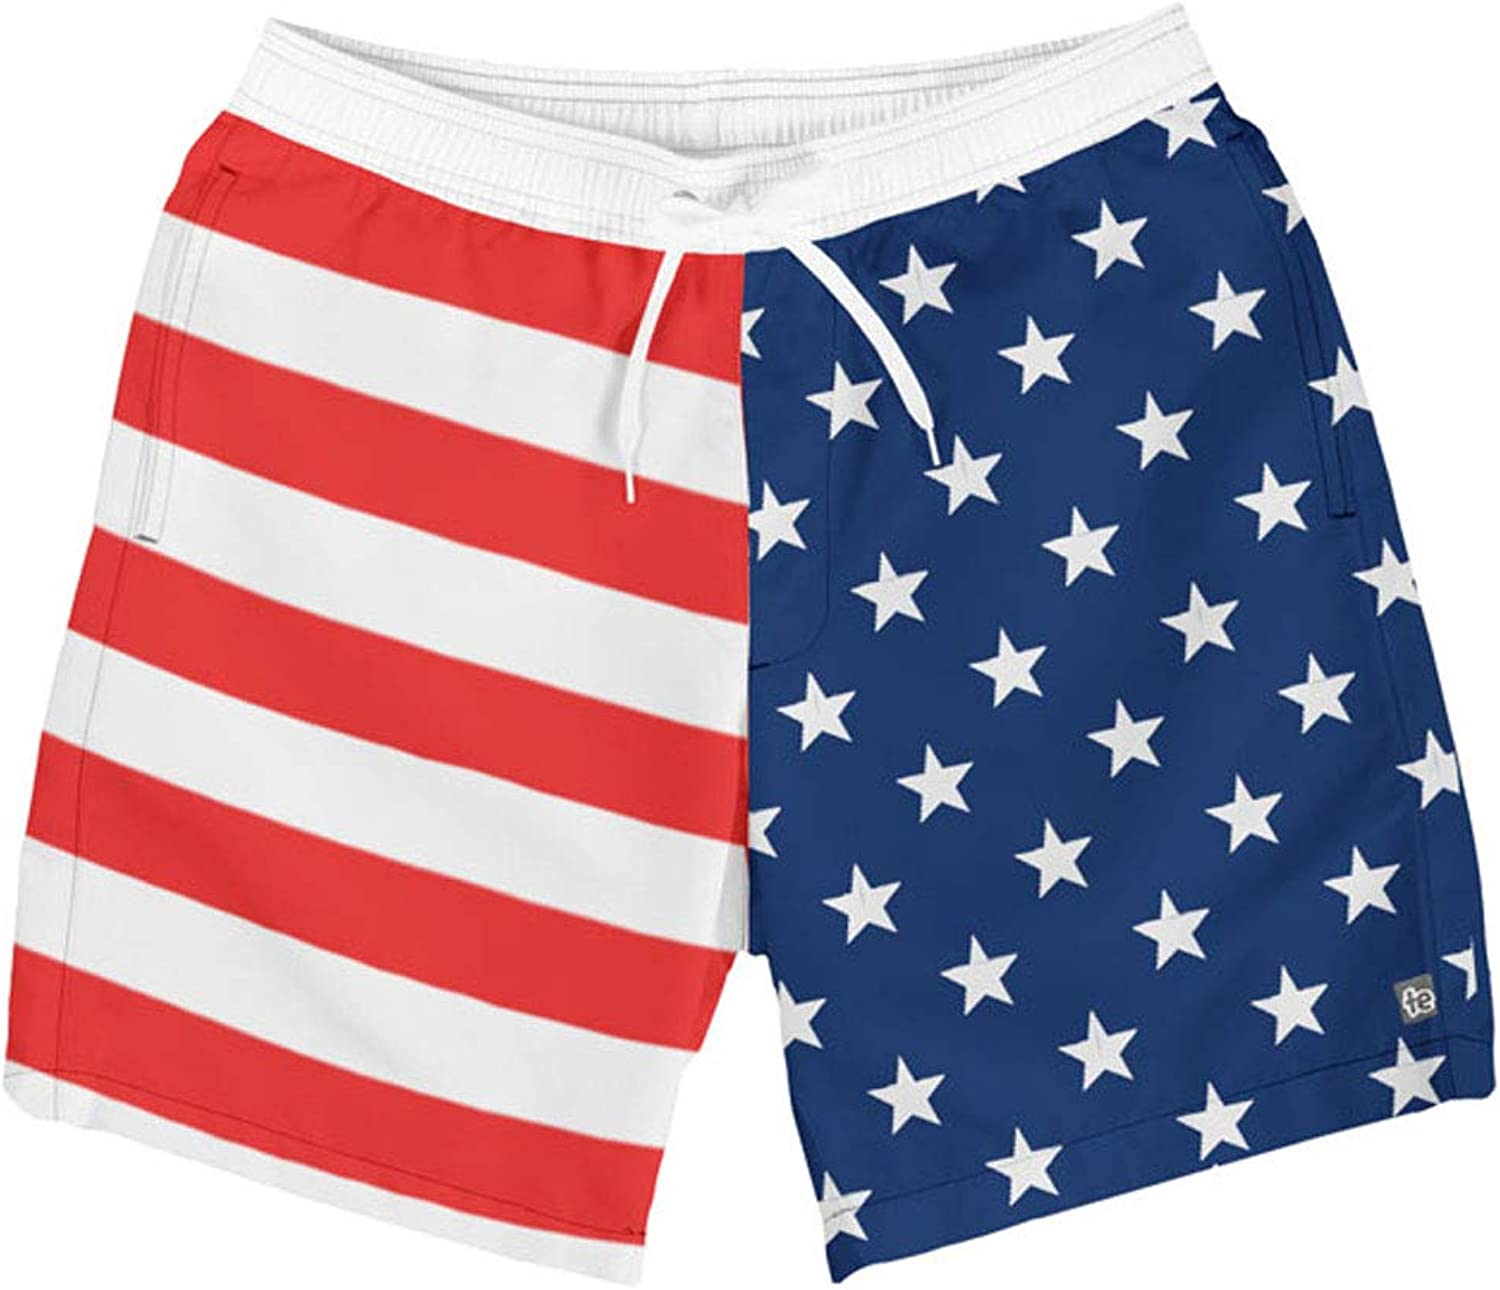 You Know And Good Wings of Freedom Mens Swim Trunks Bathing Suit Beach Shorts